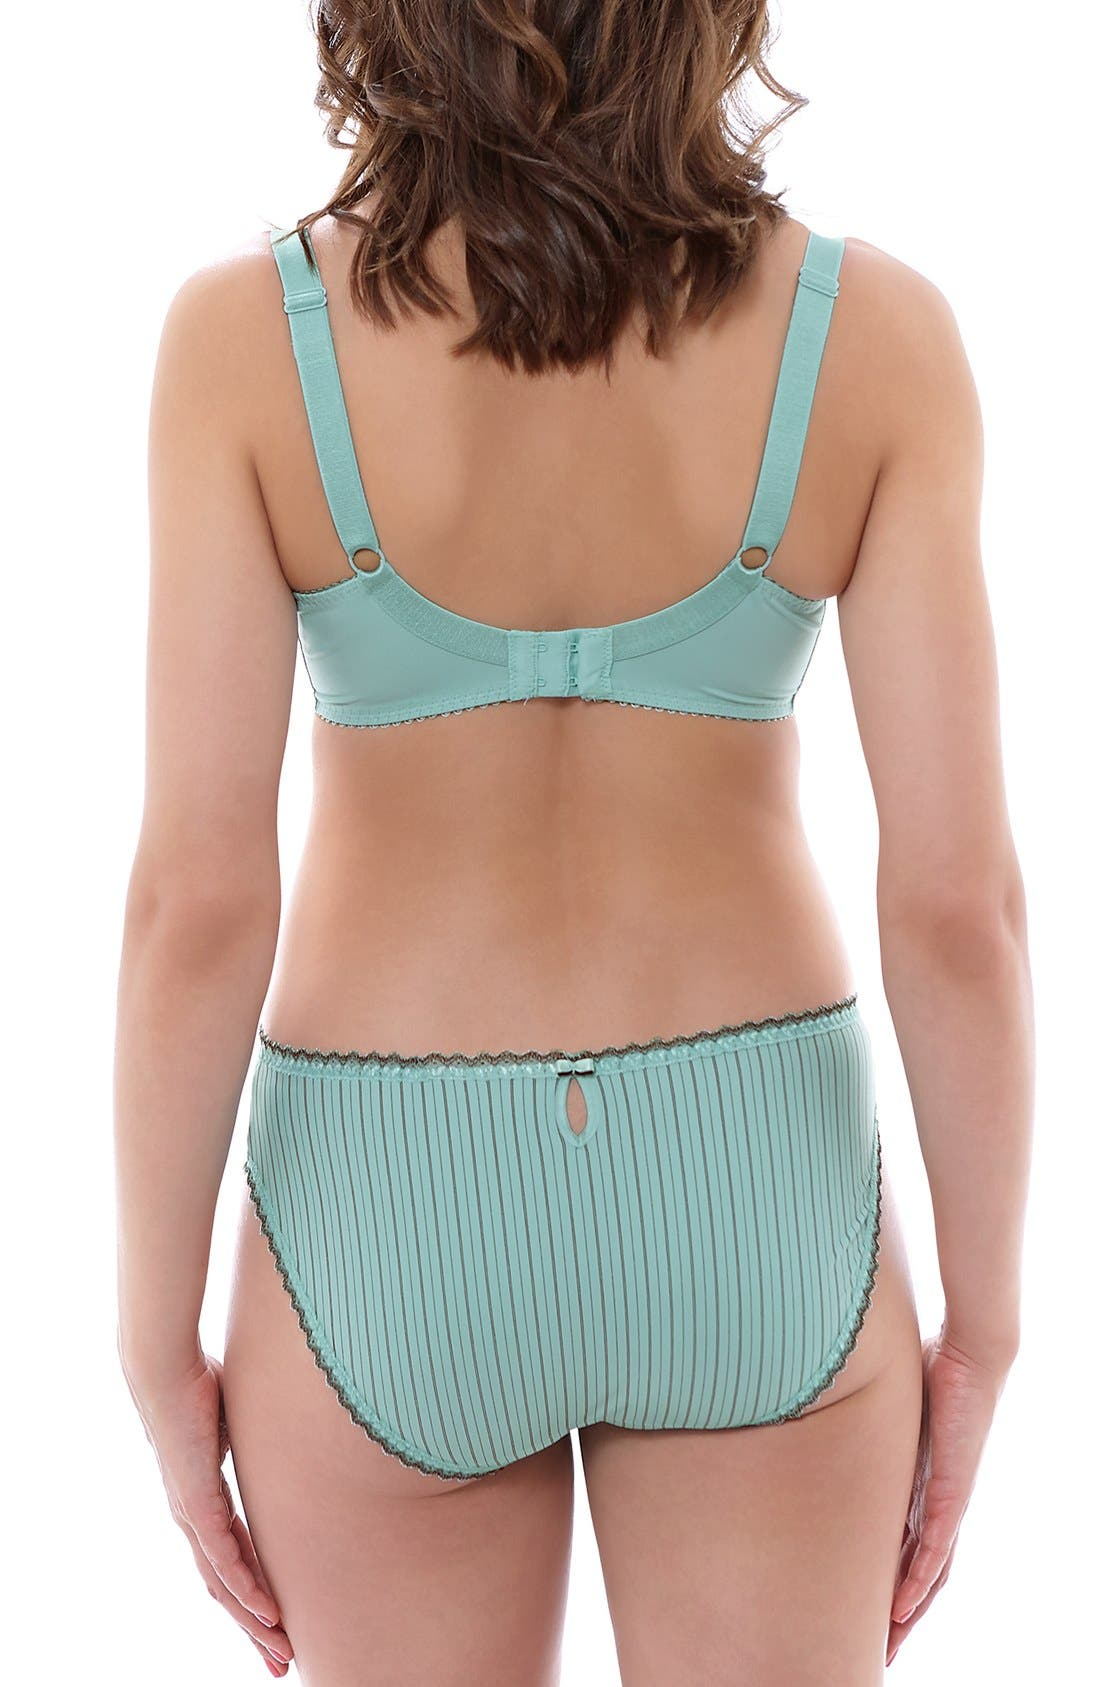 'Lois' Pinstripe Underwire Bra,                             Alternate thumbnail 4, color,                             Mint Chocolate